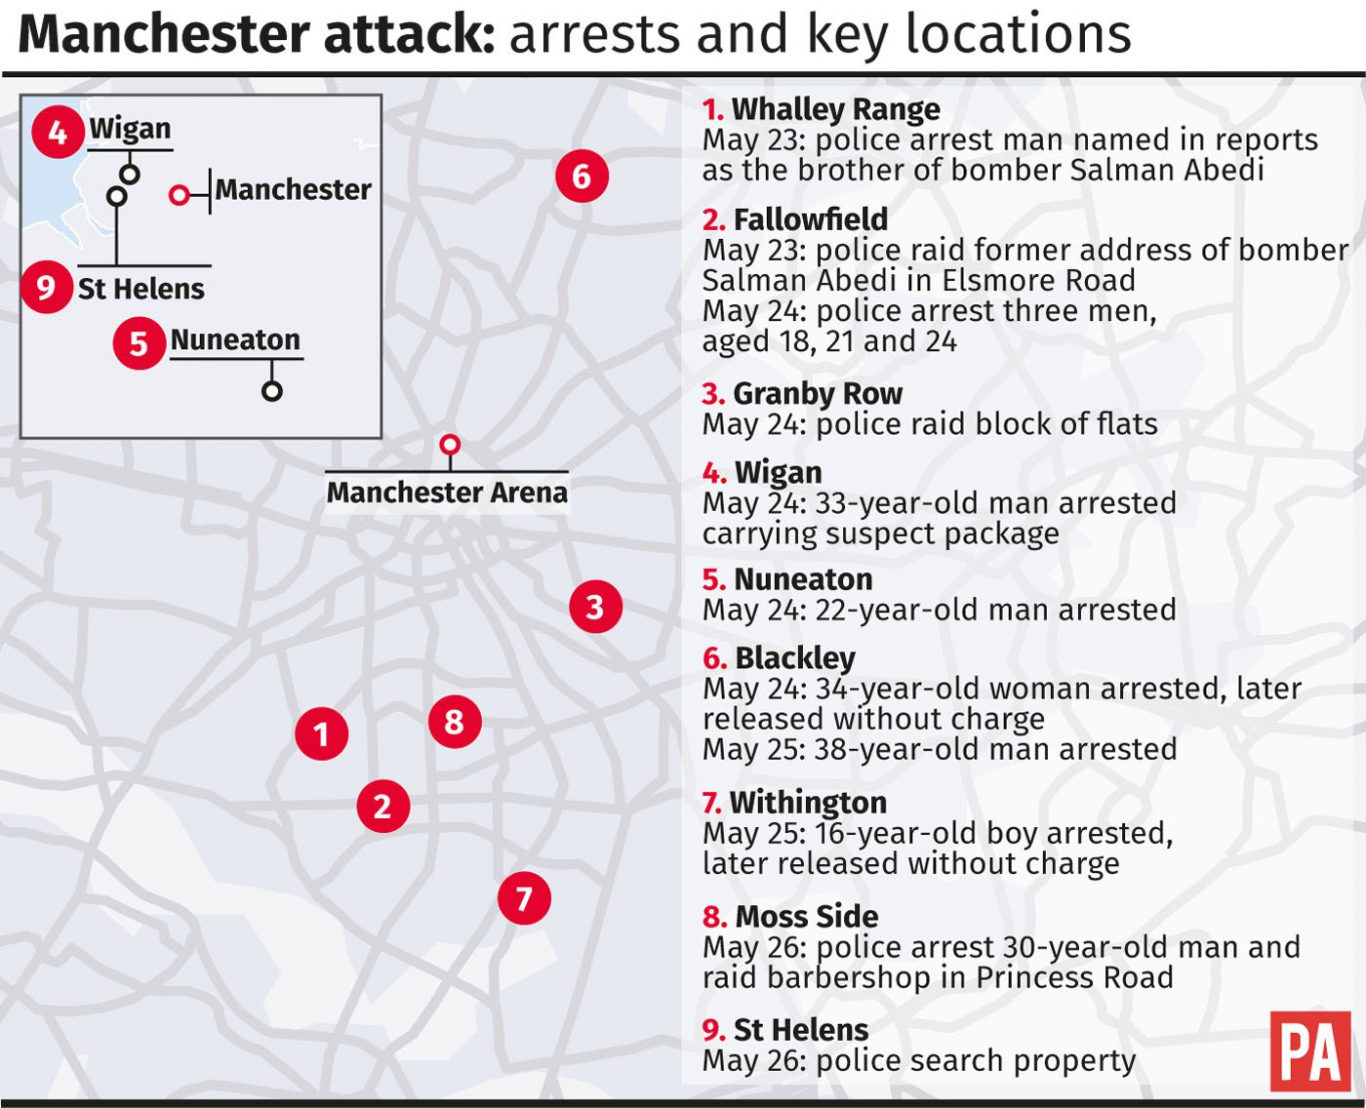 Death Toll from Ariana Grande Concert Bombing Could Rise